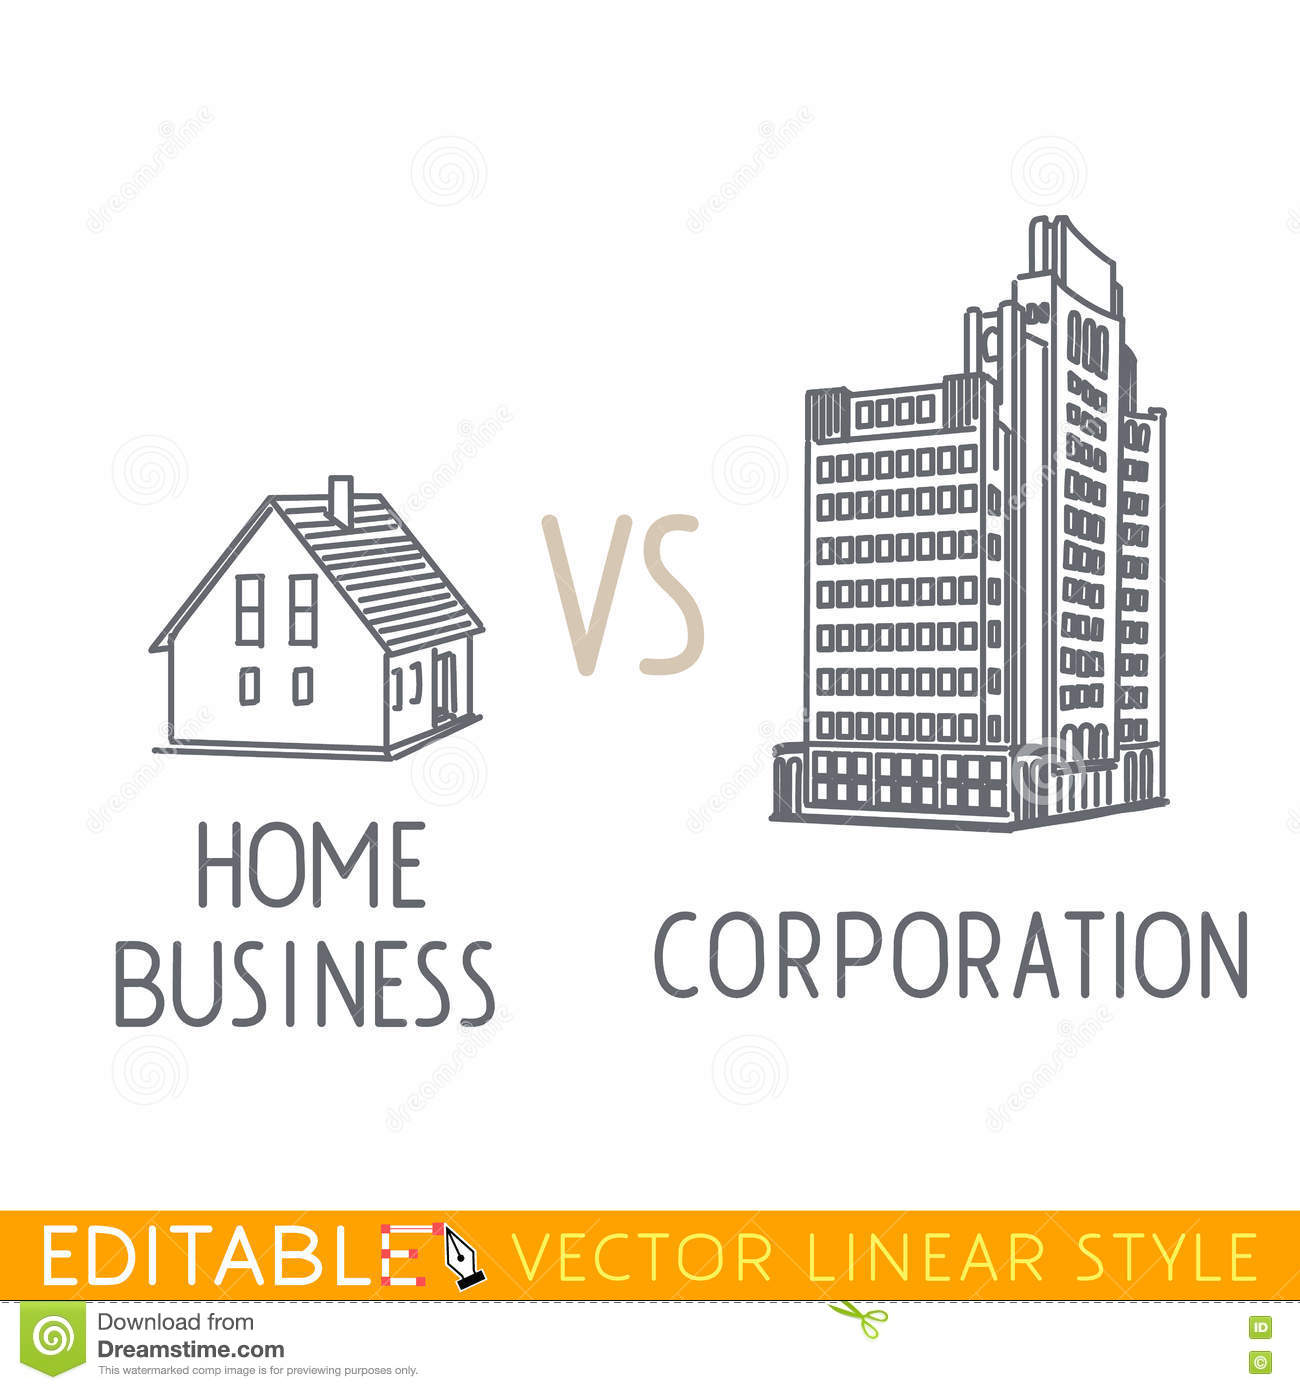 Home Business Vs Corporation. Buildings Small Company Big